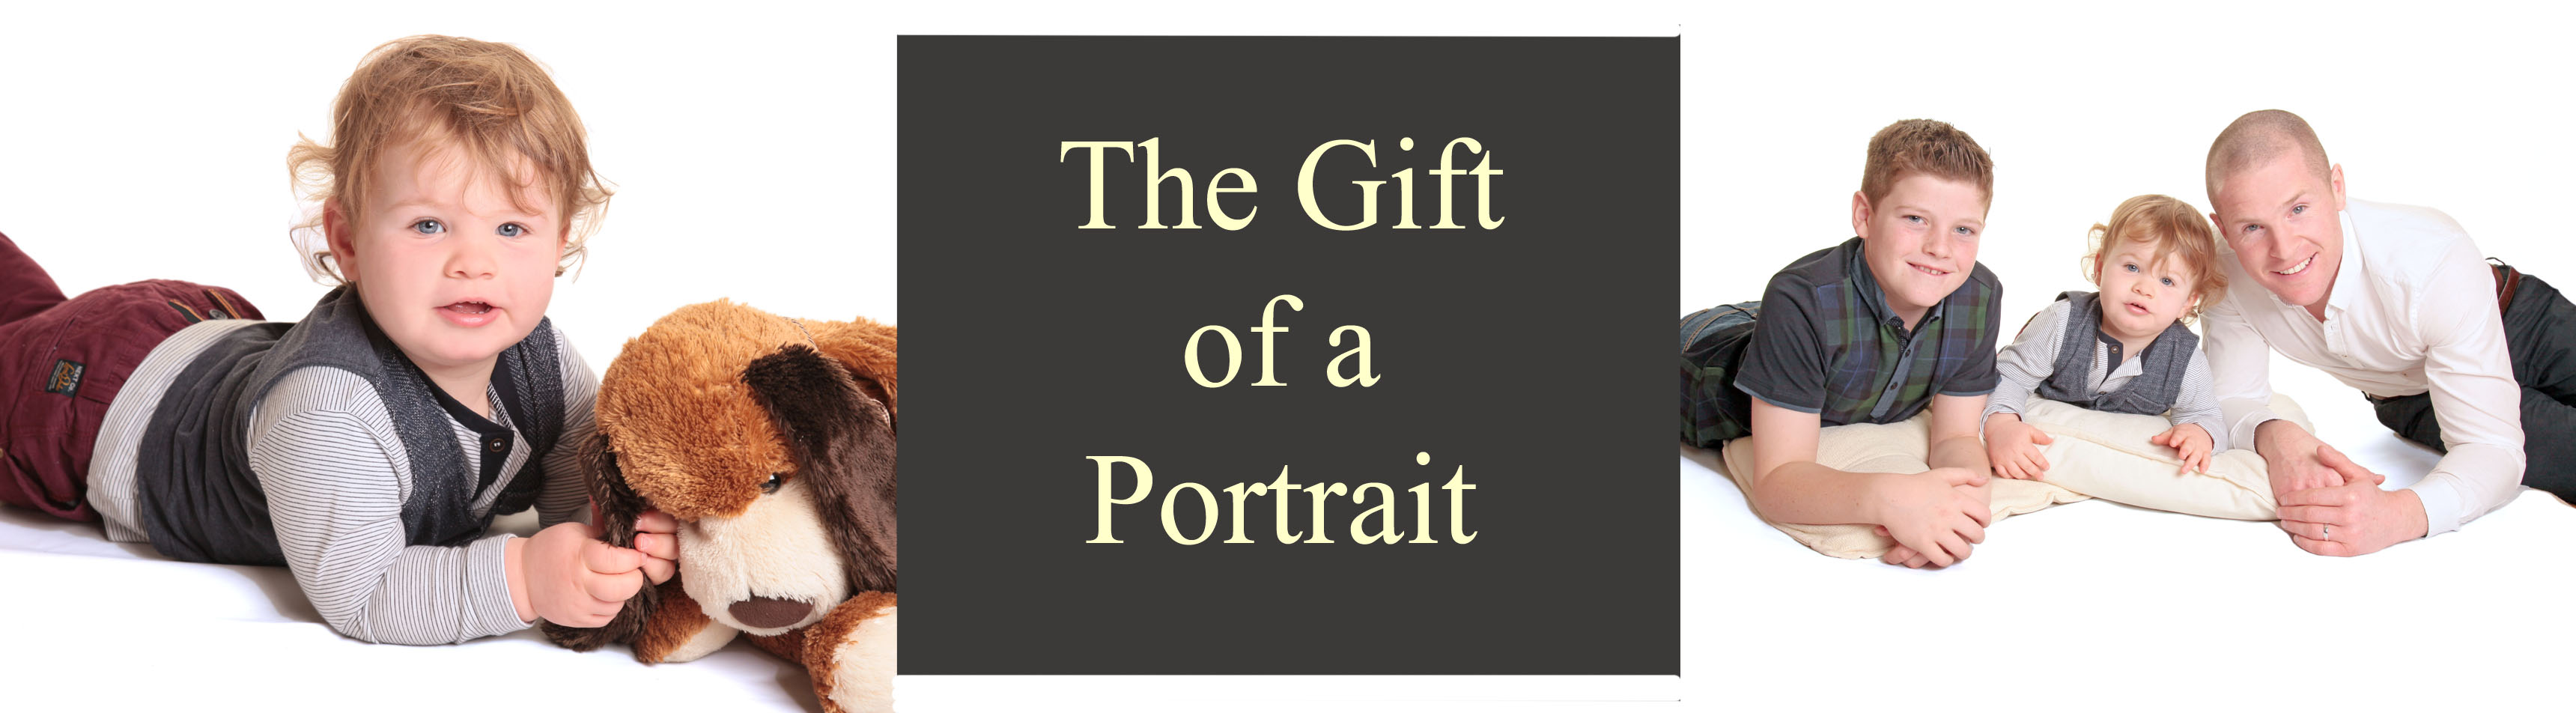 The gift of a portrait